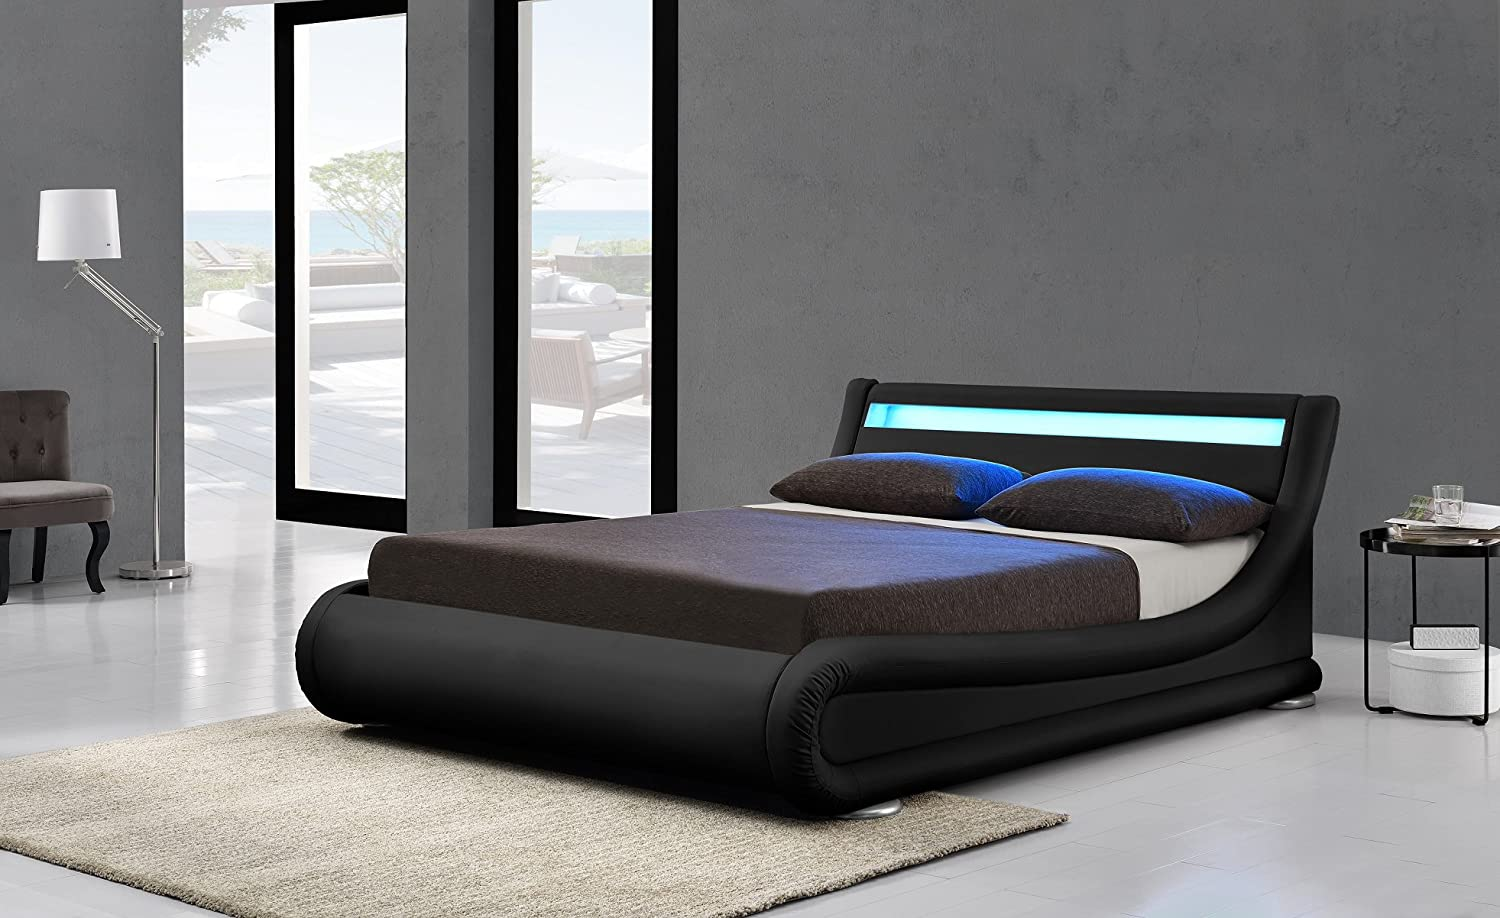 Limitless Home Rio LED Black Designer Curved Ottoman Gas Lift Storage Bed 46 Double 5ft King By 4ft6 Double